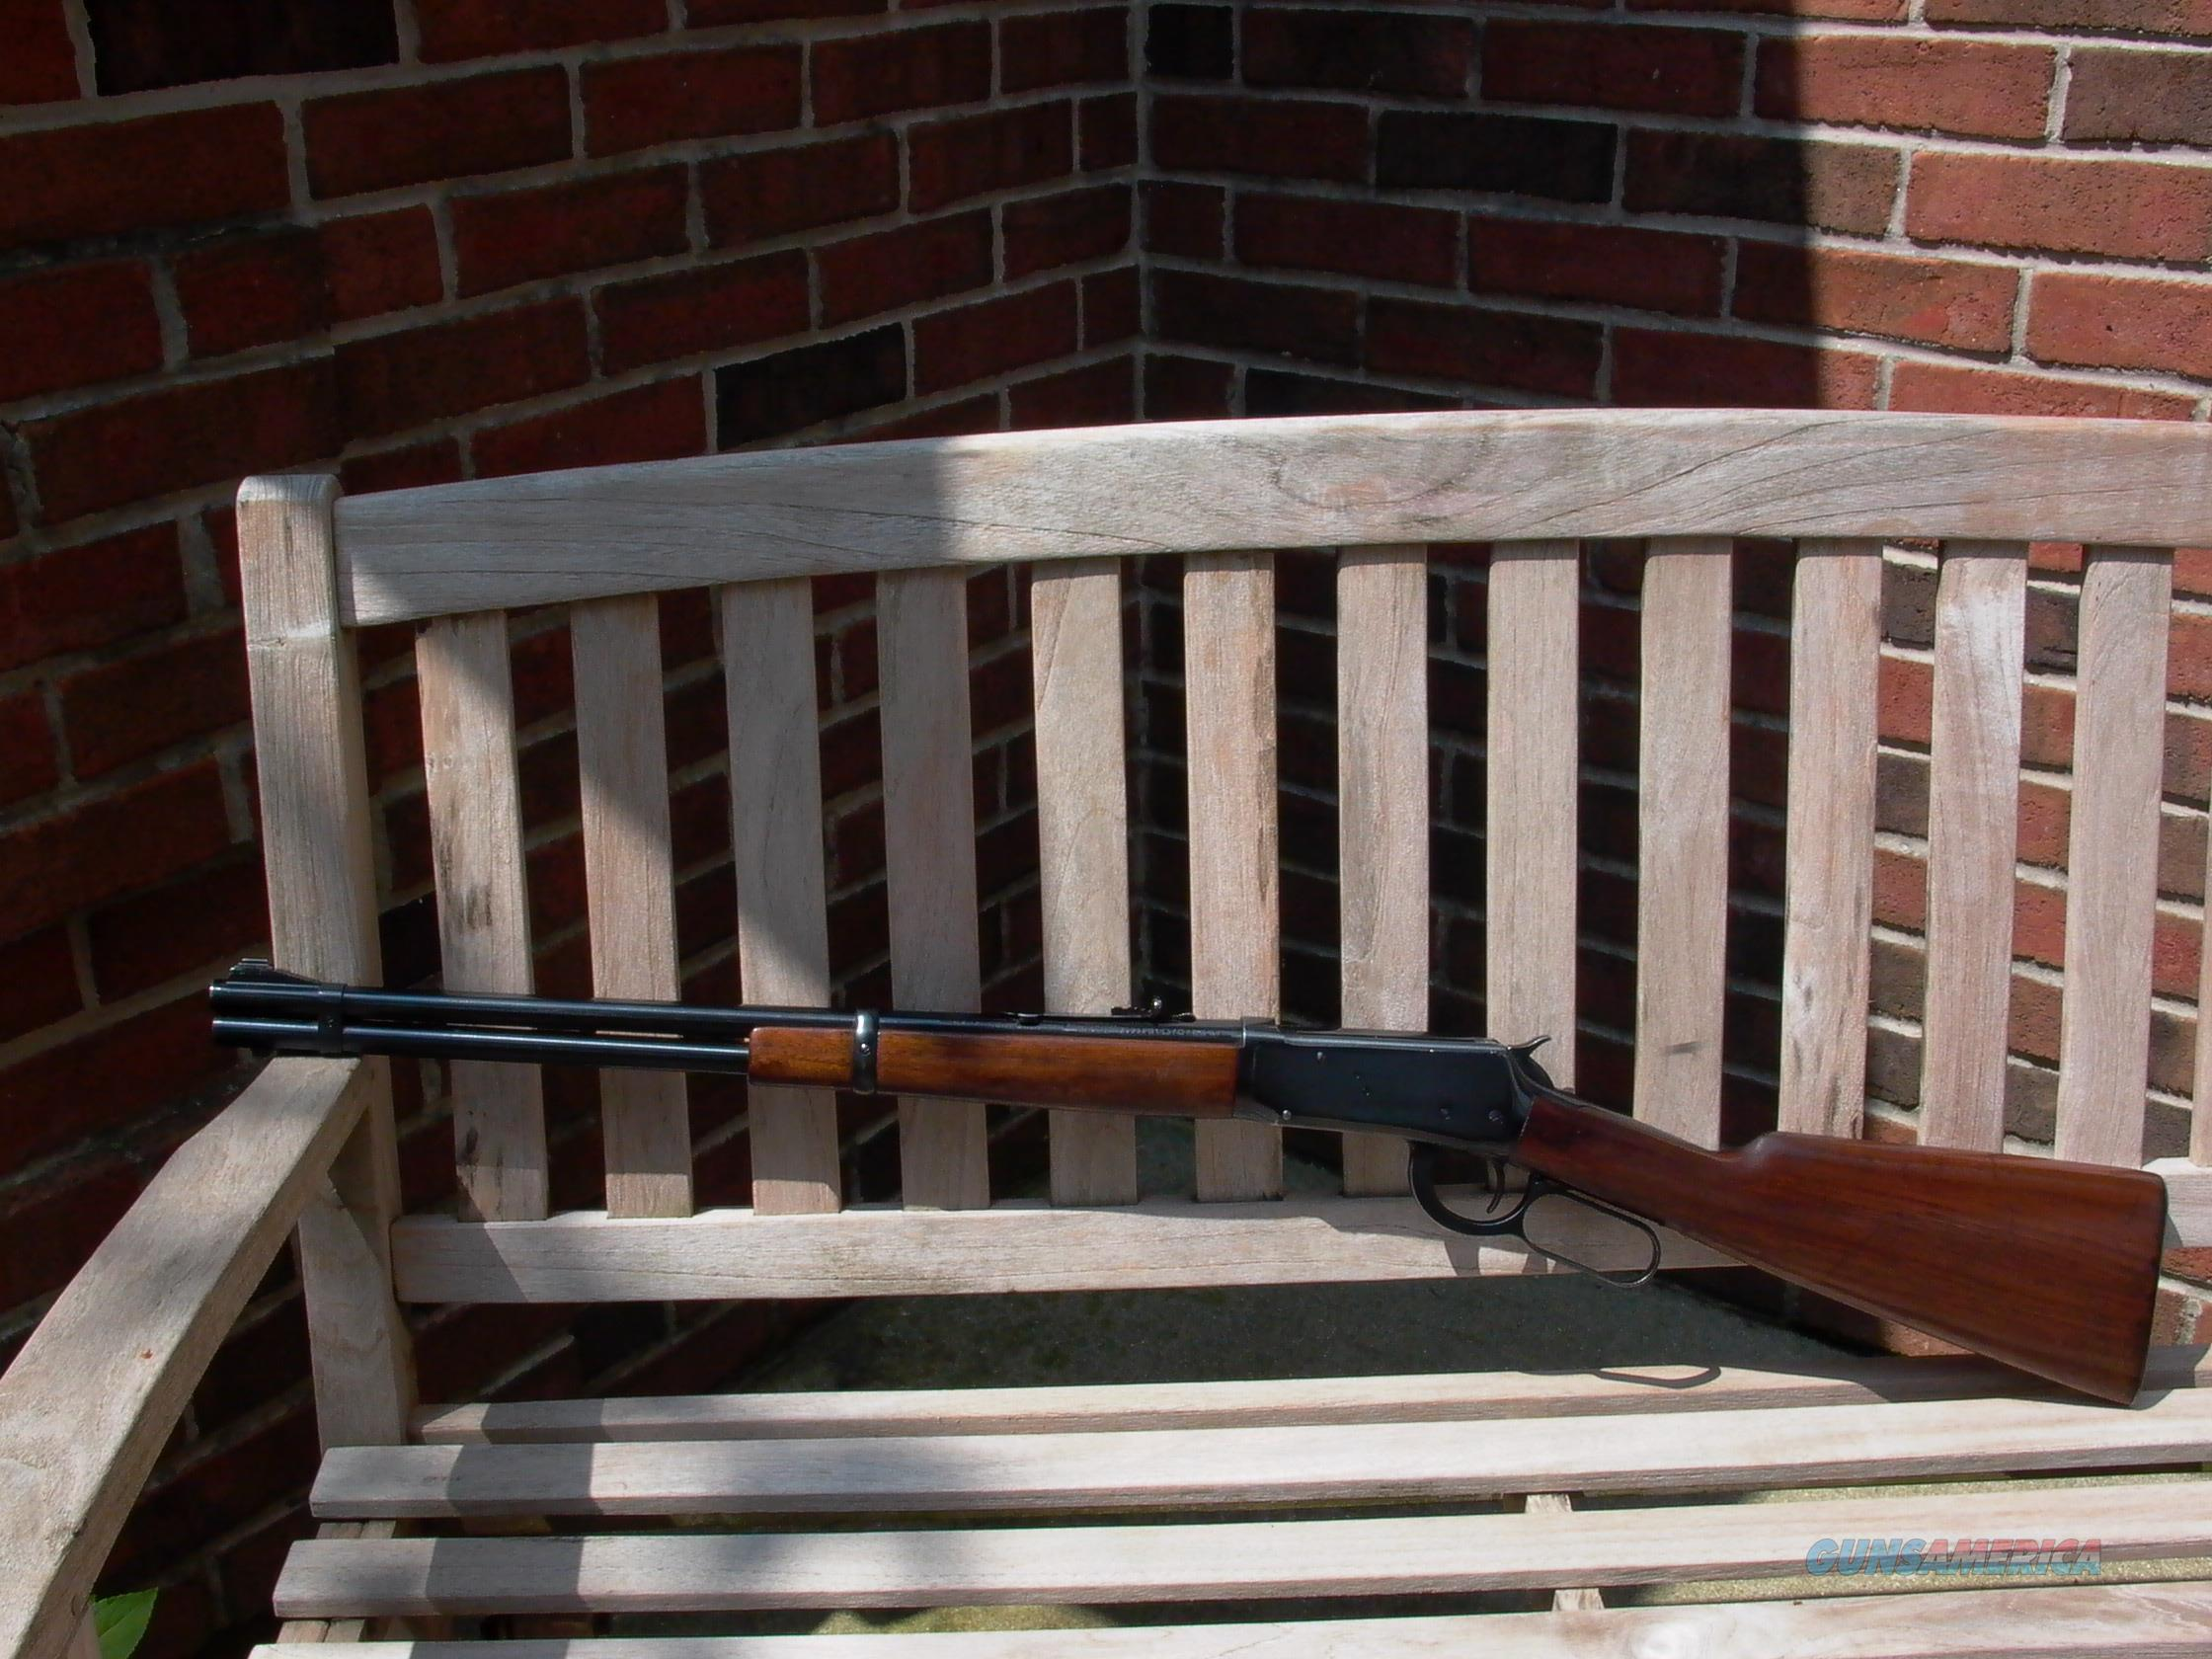 94 FLAT BAND 25-35 WCF MADE DURING WWII  Guns > Rifles > Winchester Rifles - Modern Lever > Model 94 > Pre-64